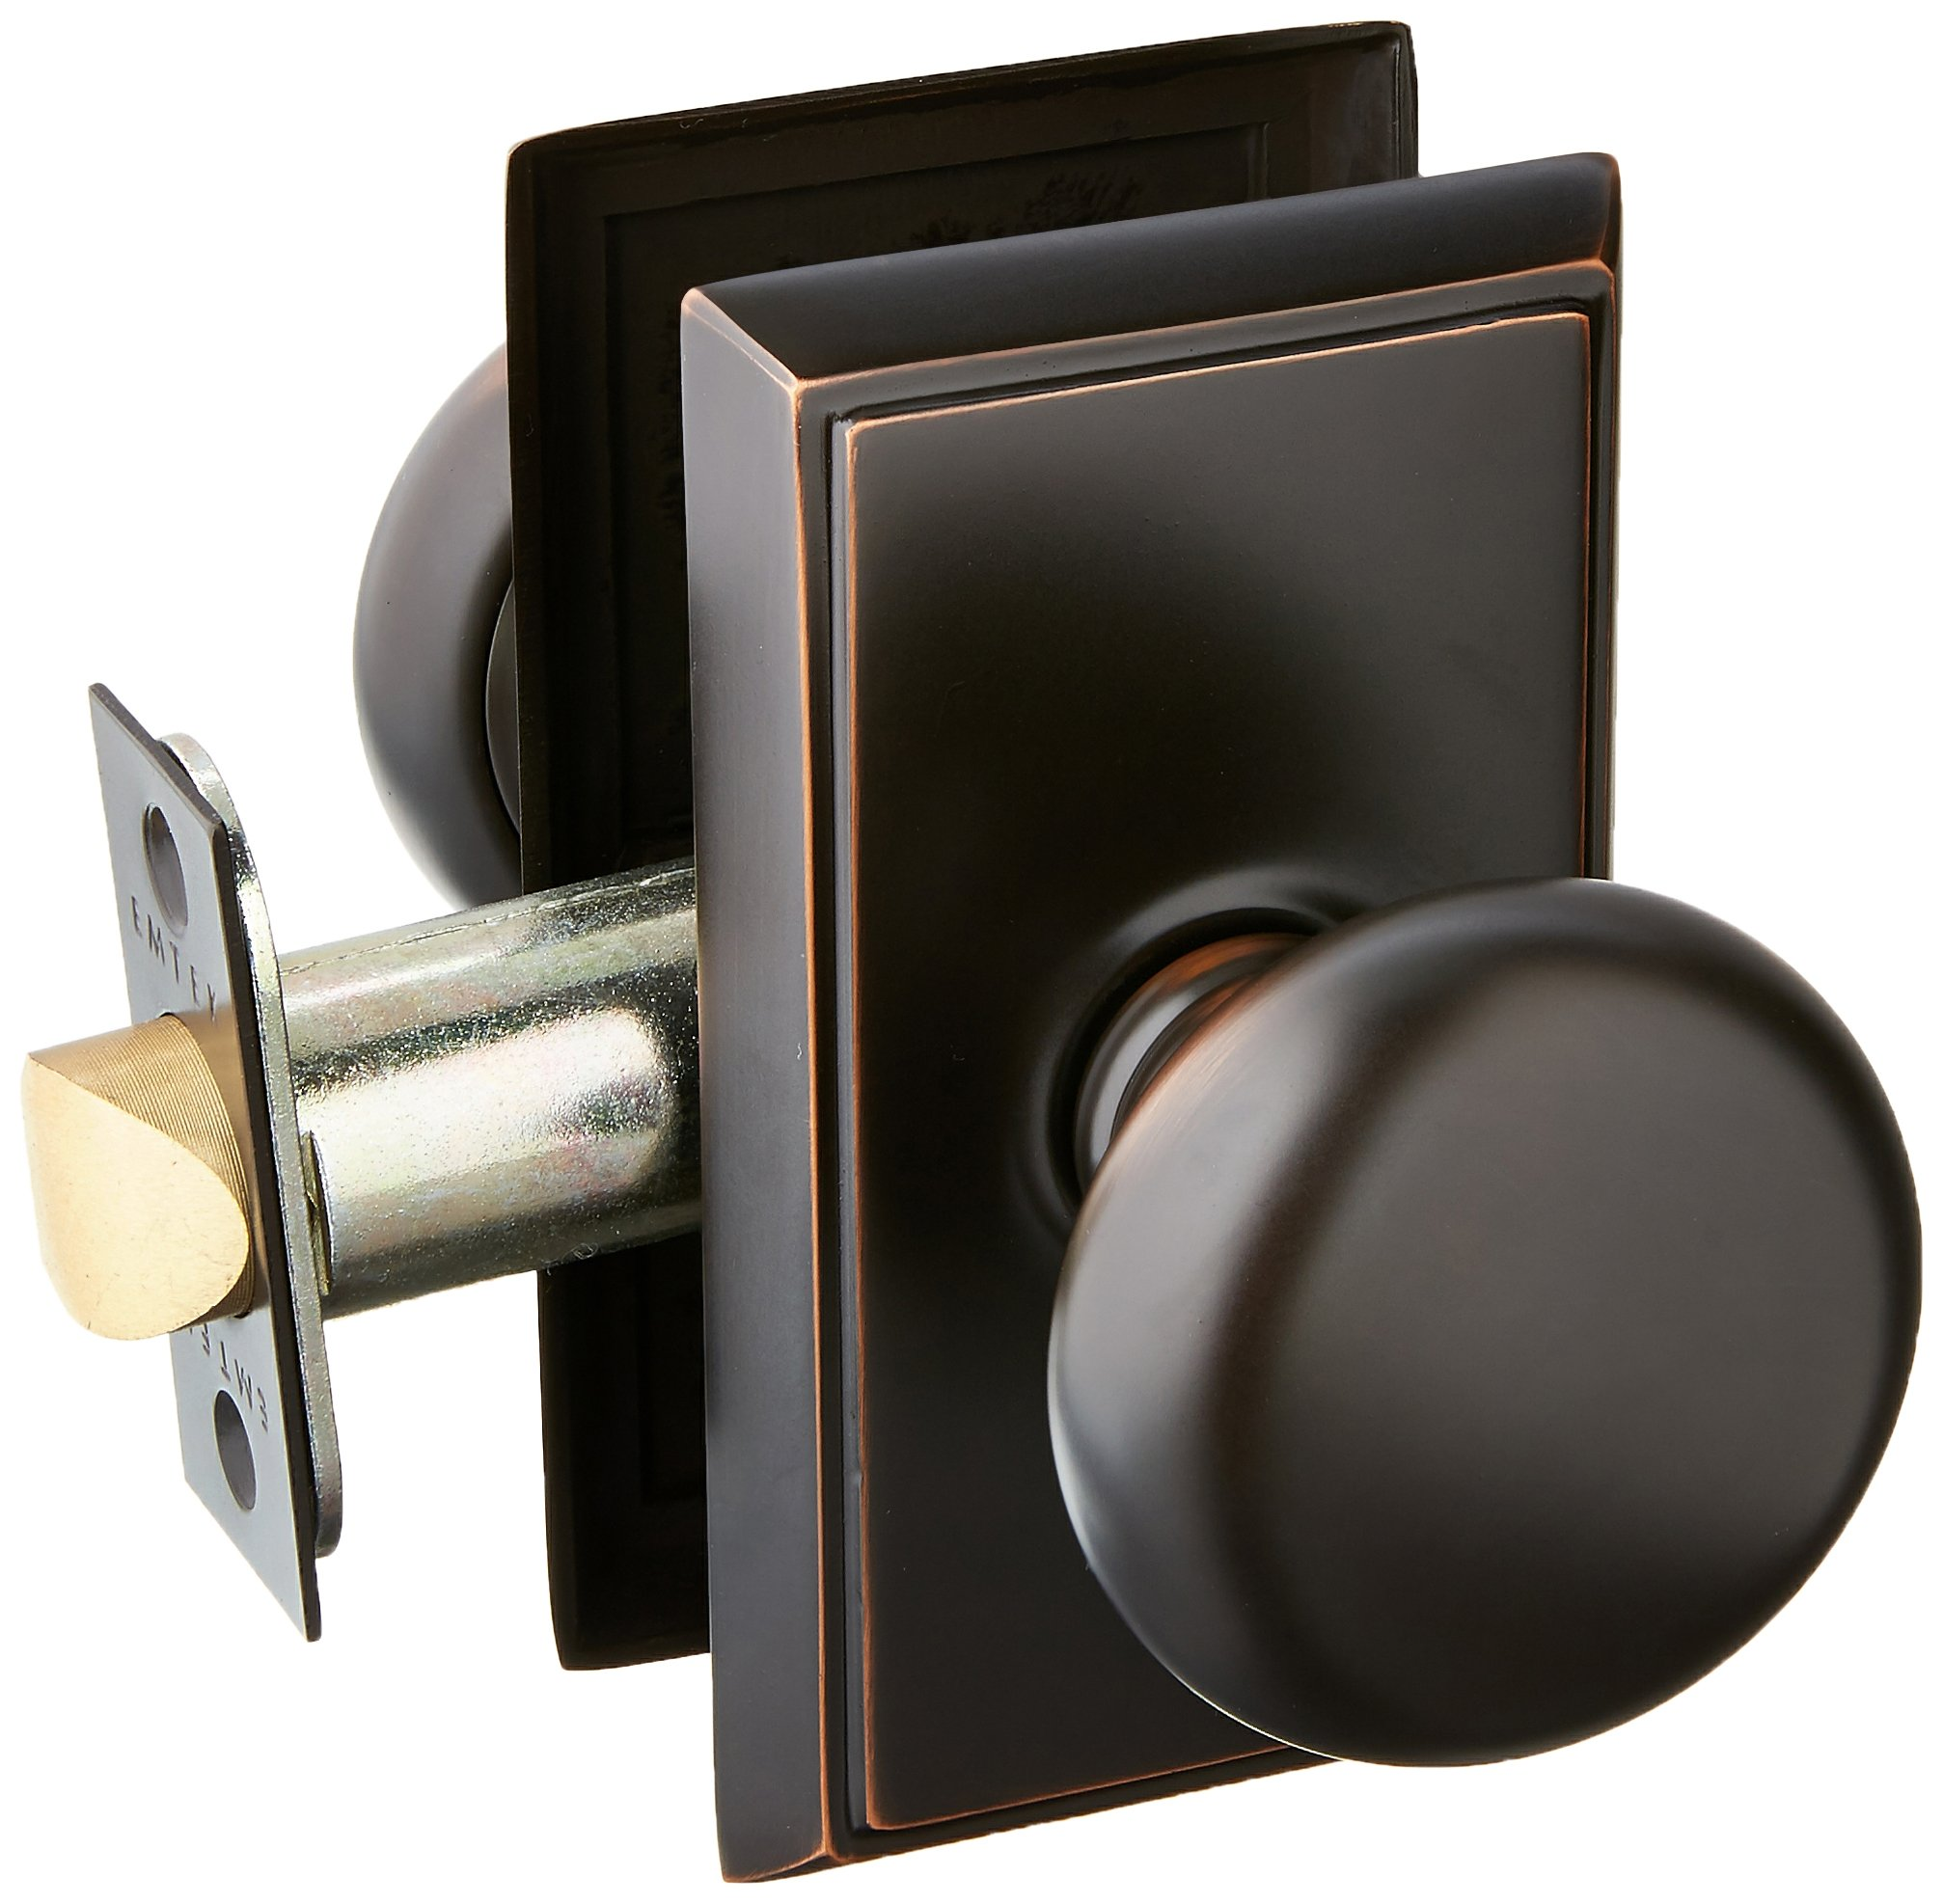 Providence Door Set With Round Brass Knobs Passage In Oil Rubbed Bronze. Doorsets.